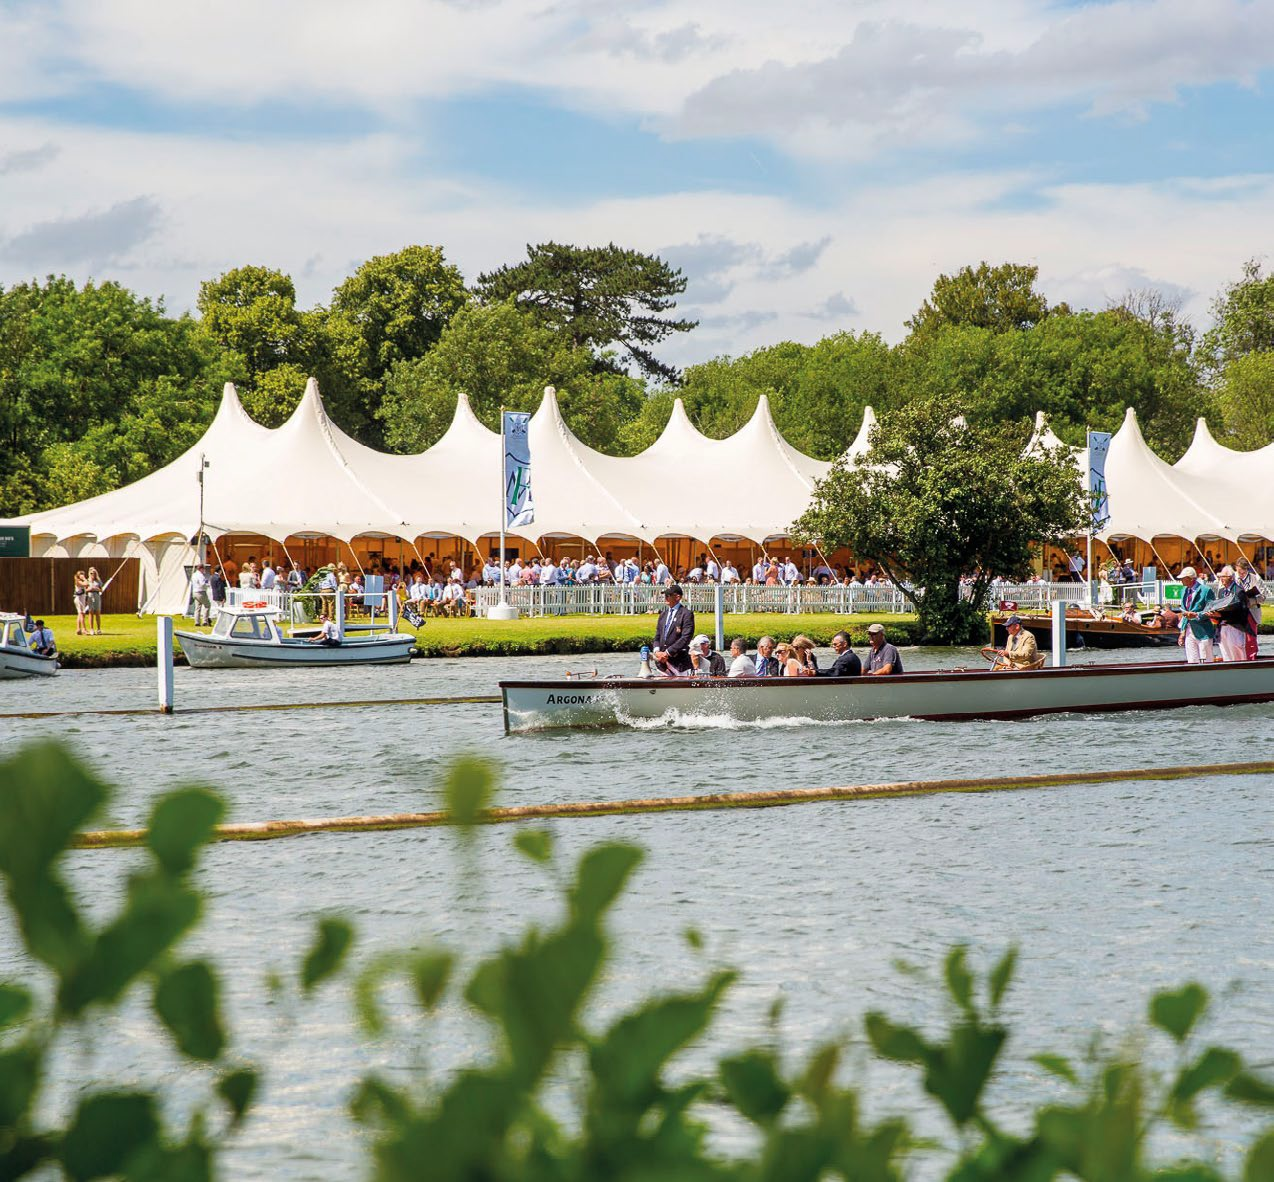 Henley Royal Regatta - Henley on Thames, OxfordshireWednesday 3 to Sunday 7 July 2019